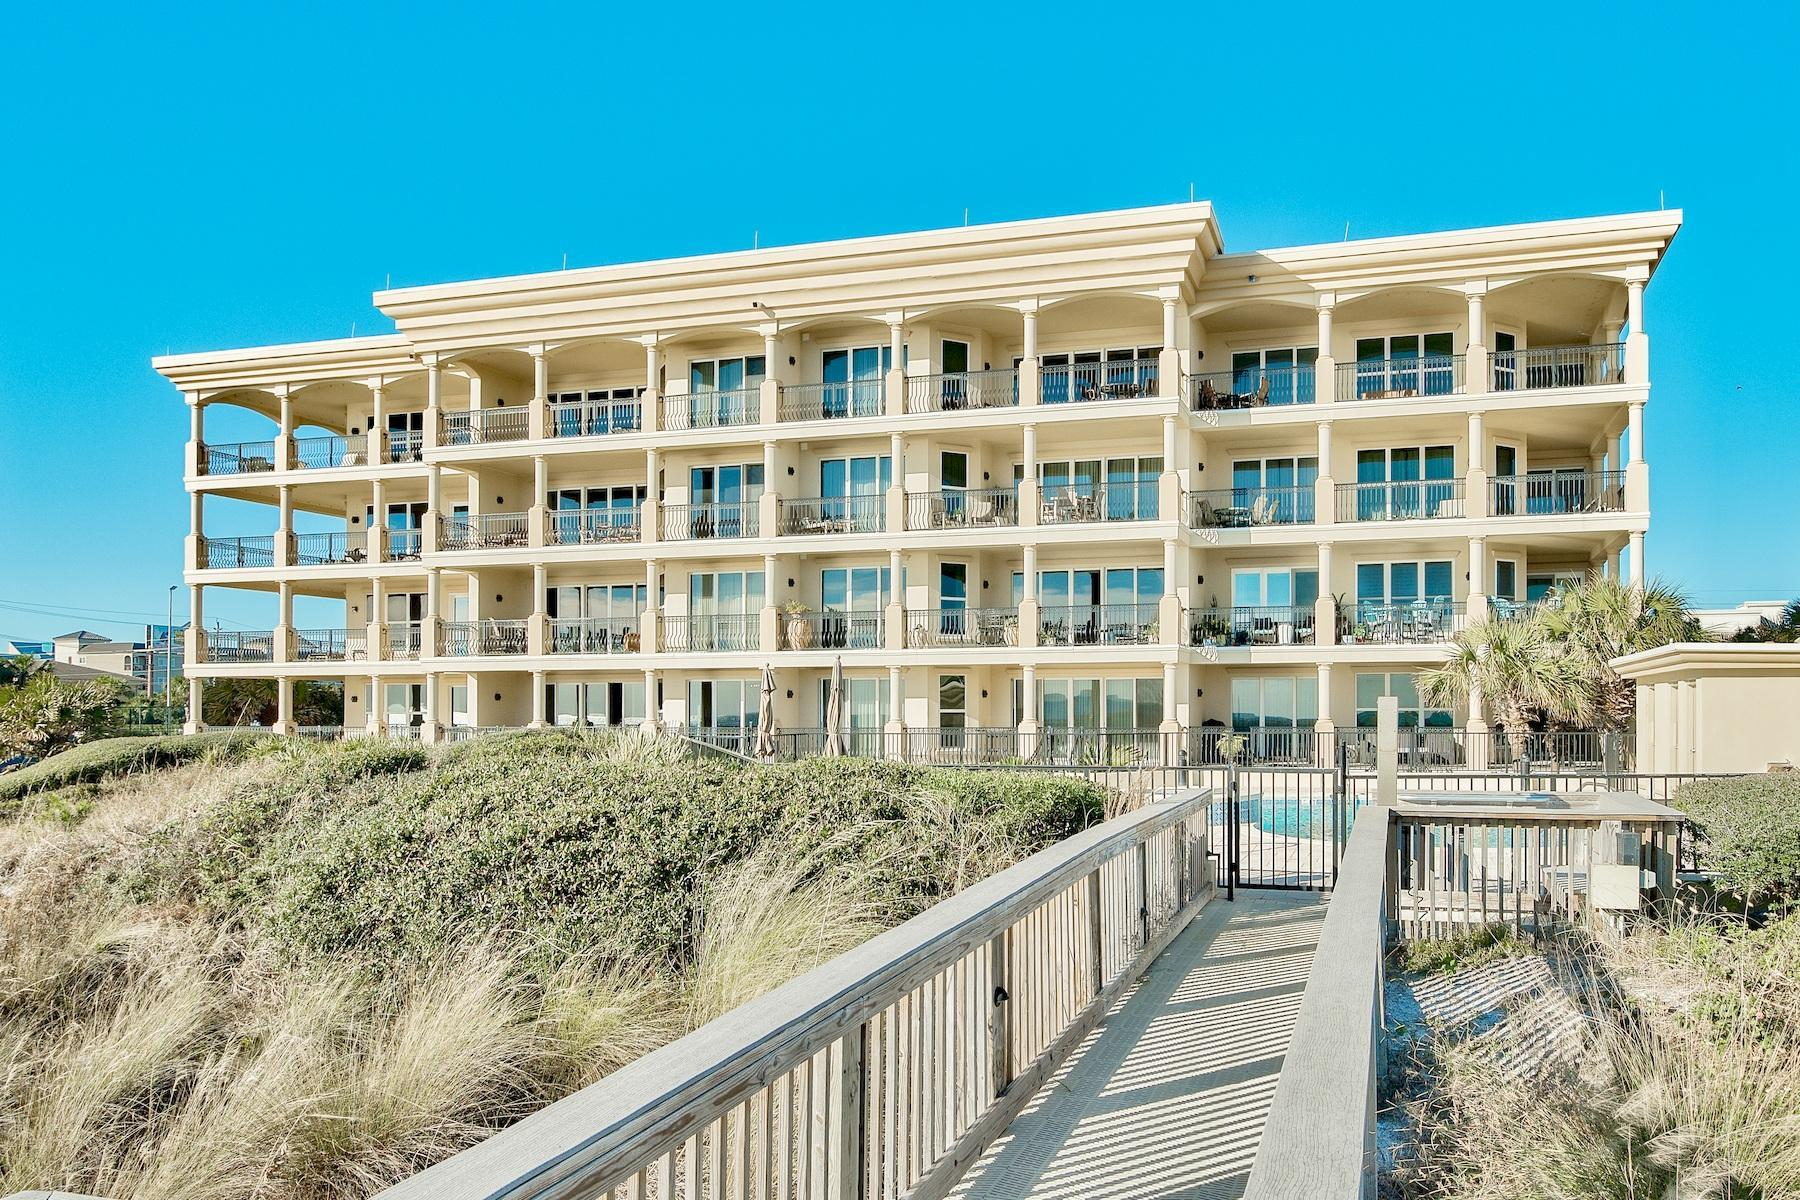 JEFFREY-PRESCOTT-ARCHITECTS-DESTIN-FLORIDA-AVALON-DUNES-COMMERCIAL-CONDOMINIUM-ARCHITECTURE-DESIGN-JEFF-8.jpg